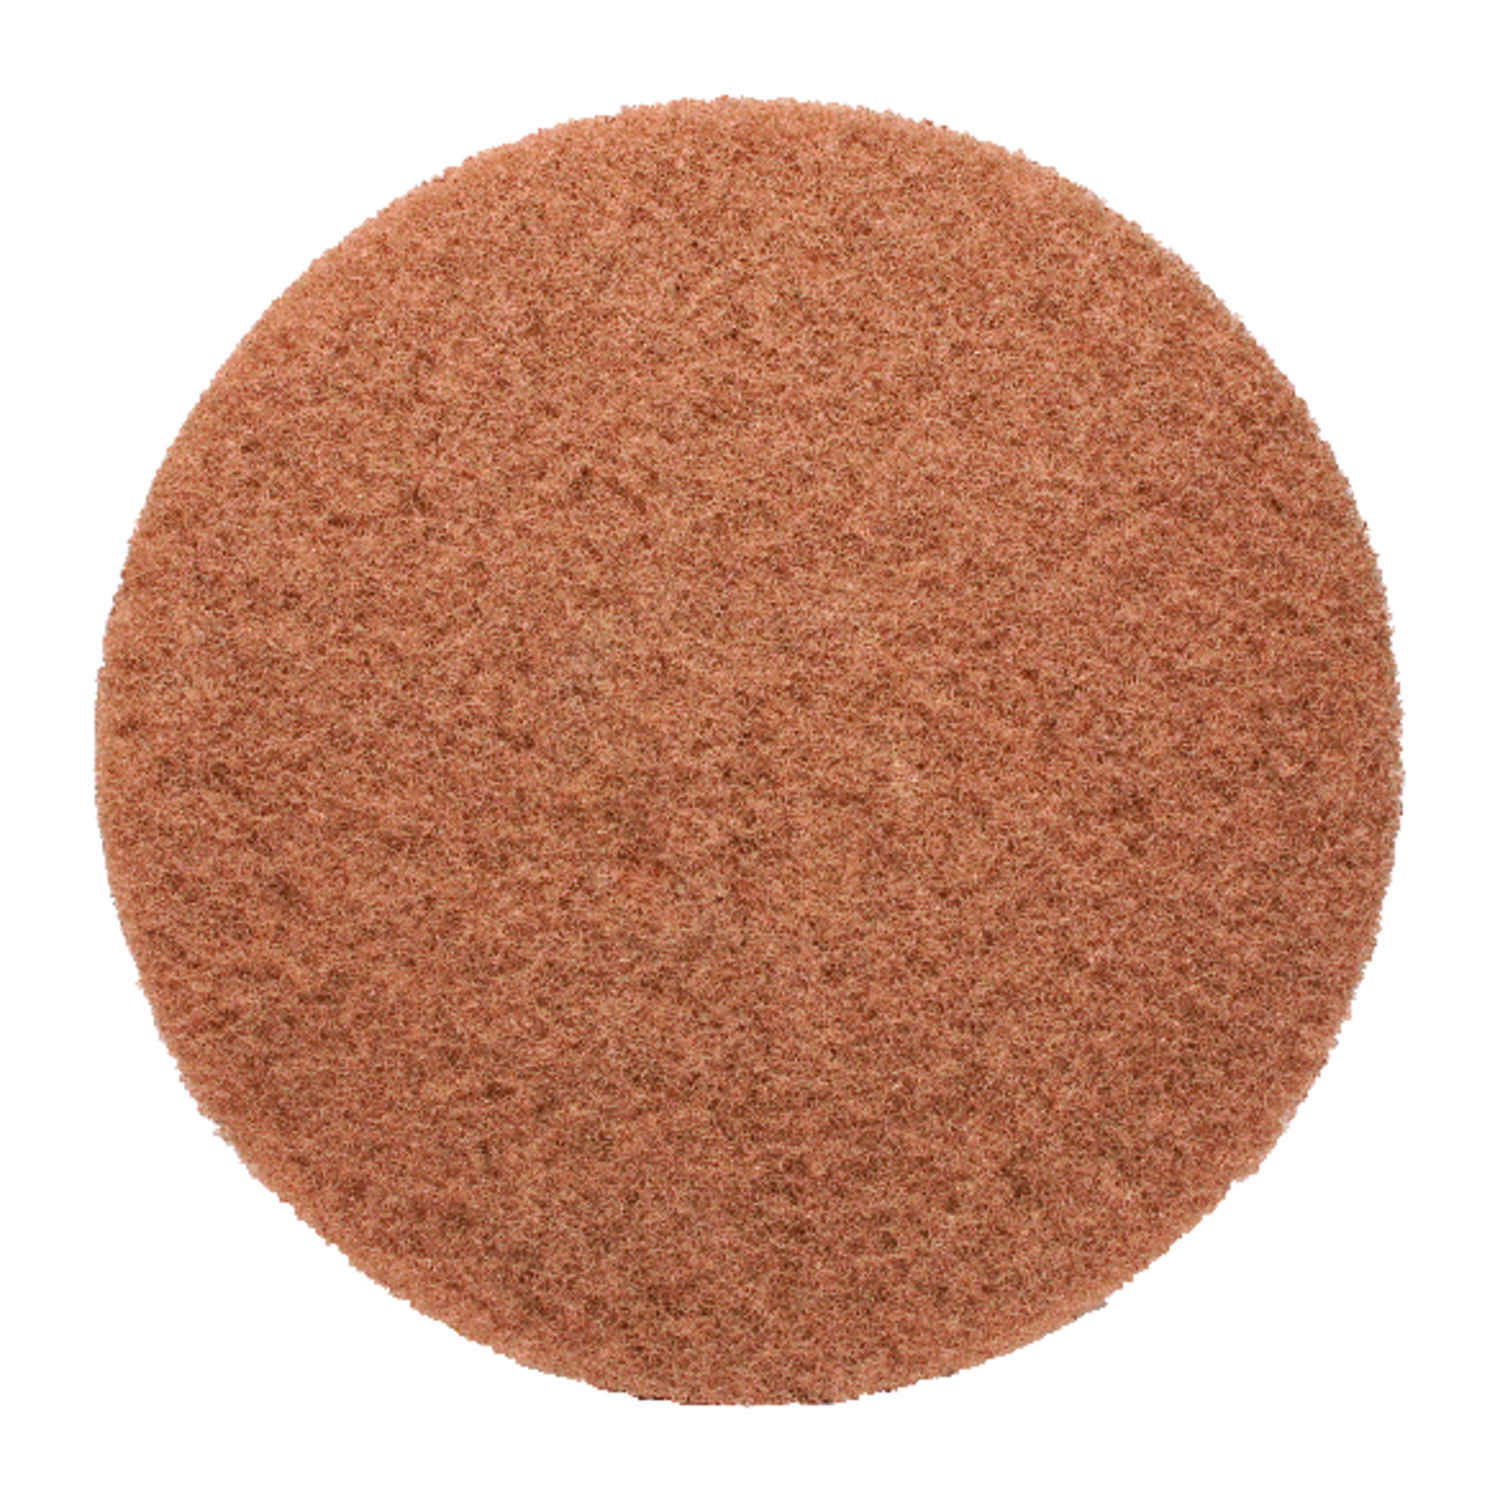 Gator  13 in. Dia. Floor Pad Disc Tan  Non-Woven Natural/Polyester Fiber  Tan